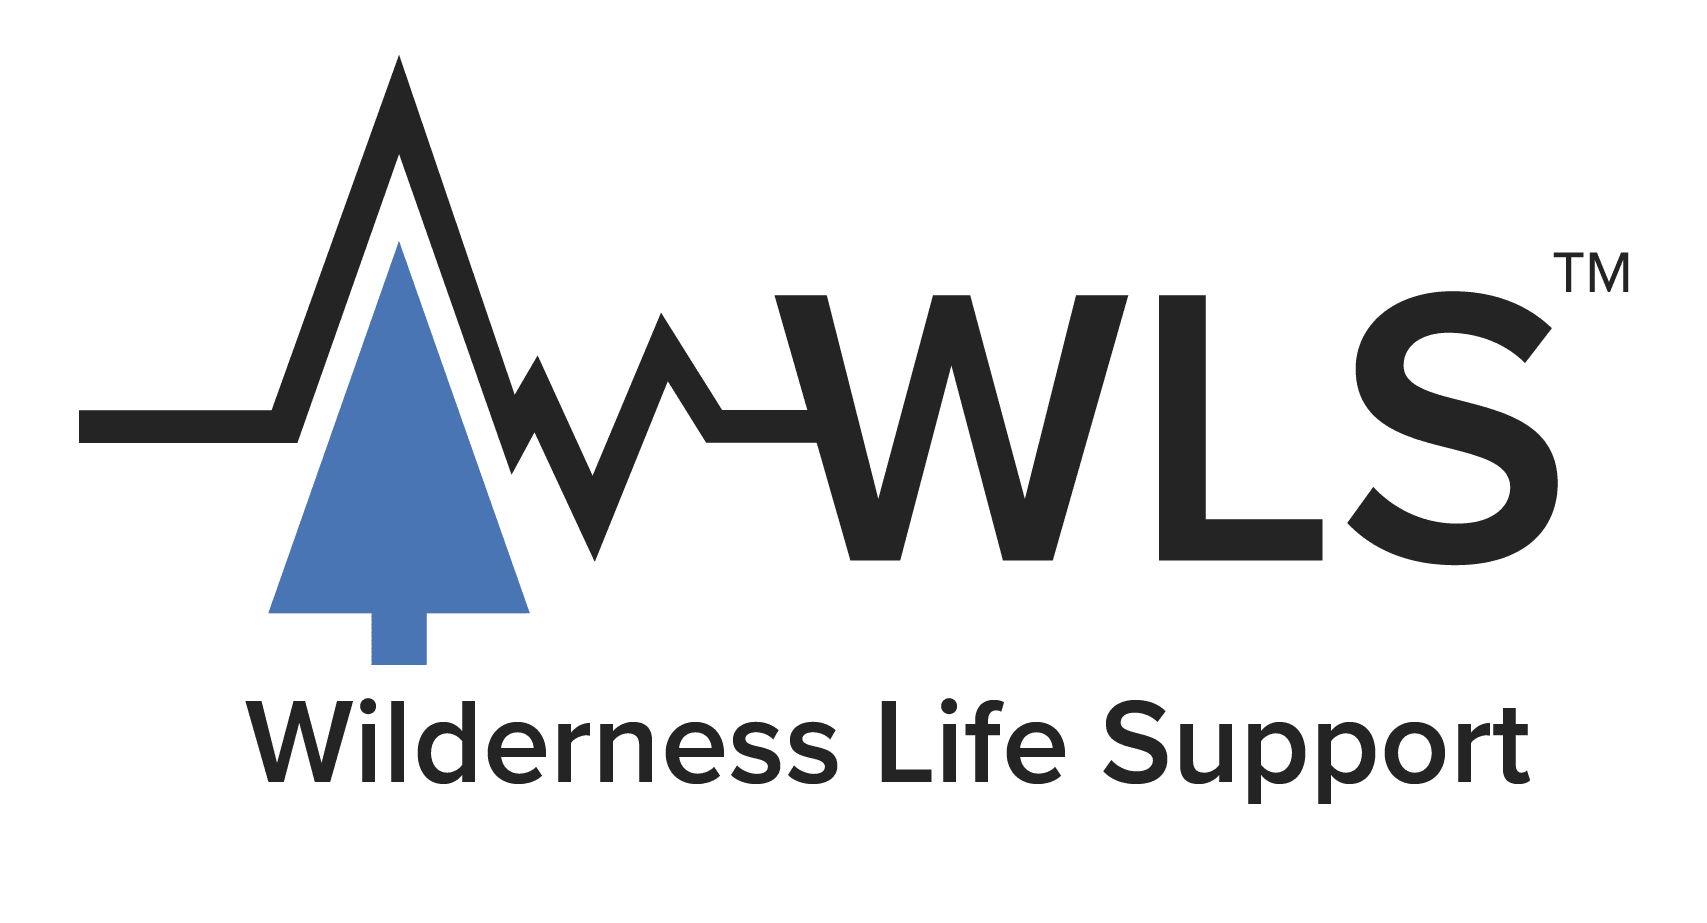 Wilderness Life Support